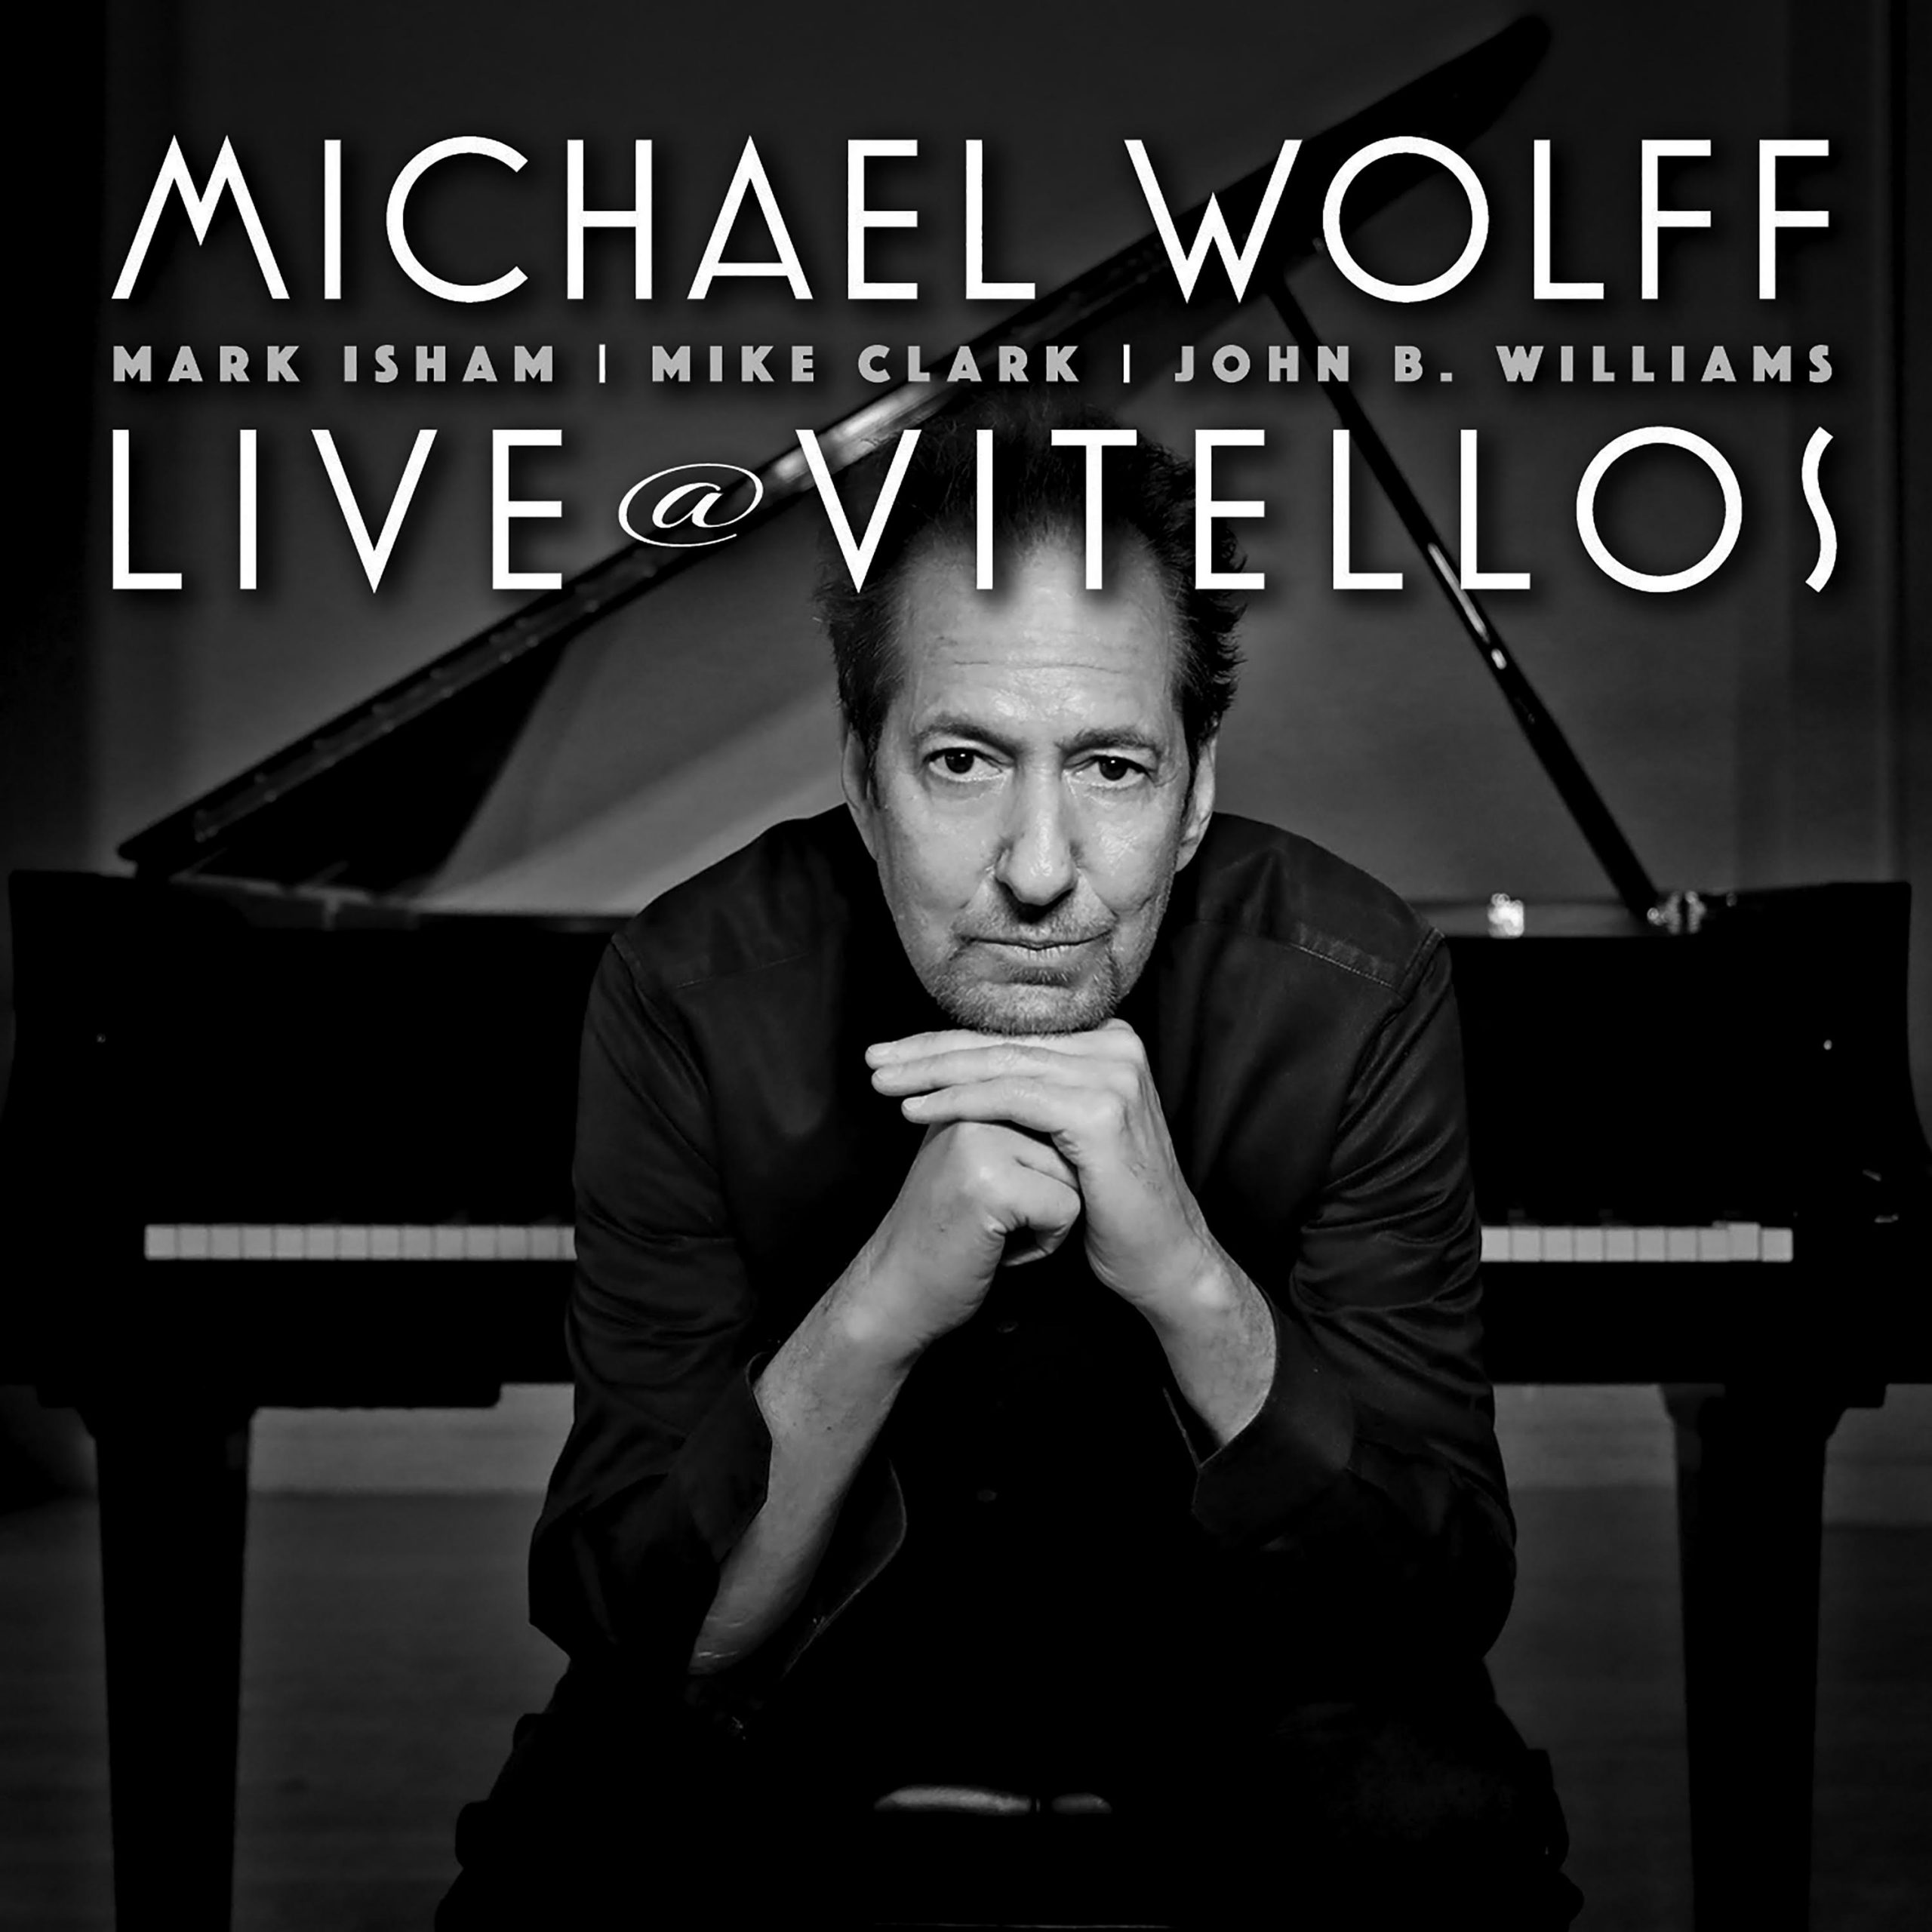 NEW RELEASE: Pianist Michael Wolff's LIVE AT VITELLOS Releasing March 19, 2021 via Sunnyside Records